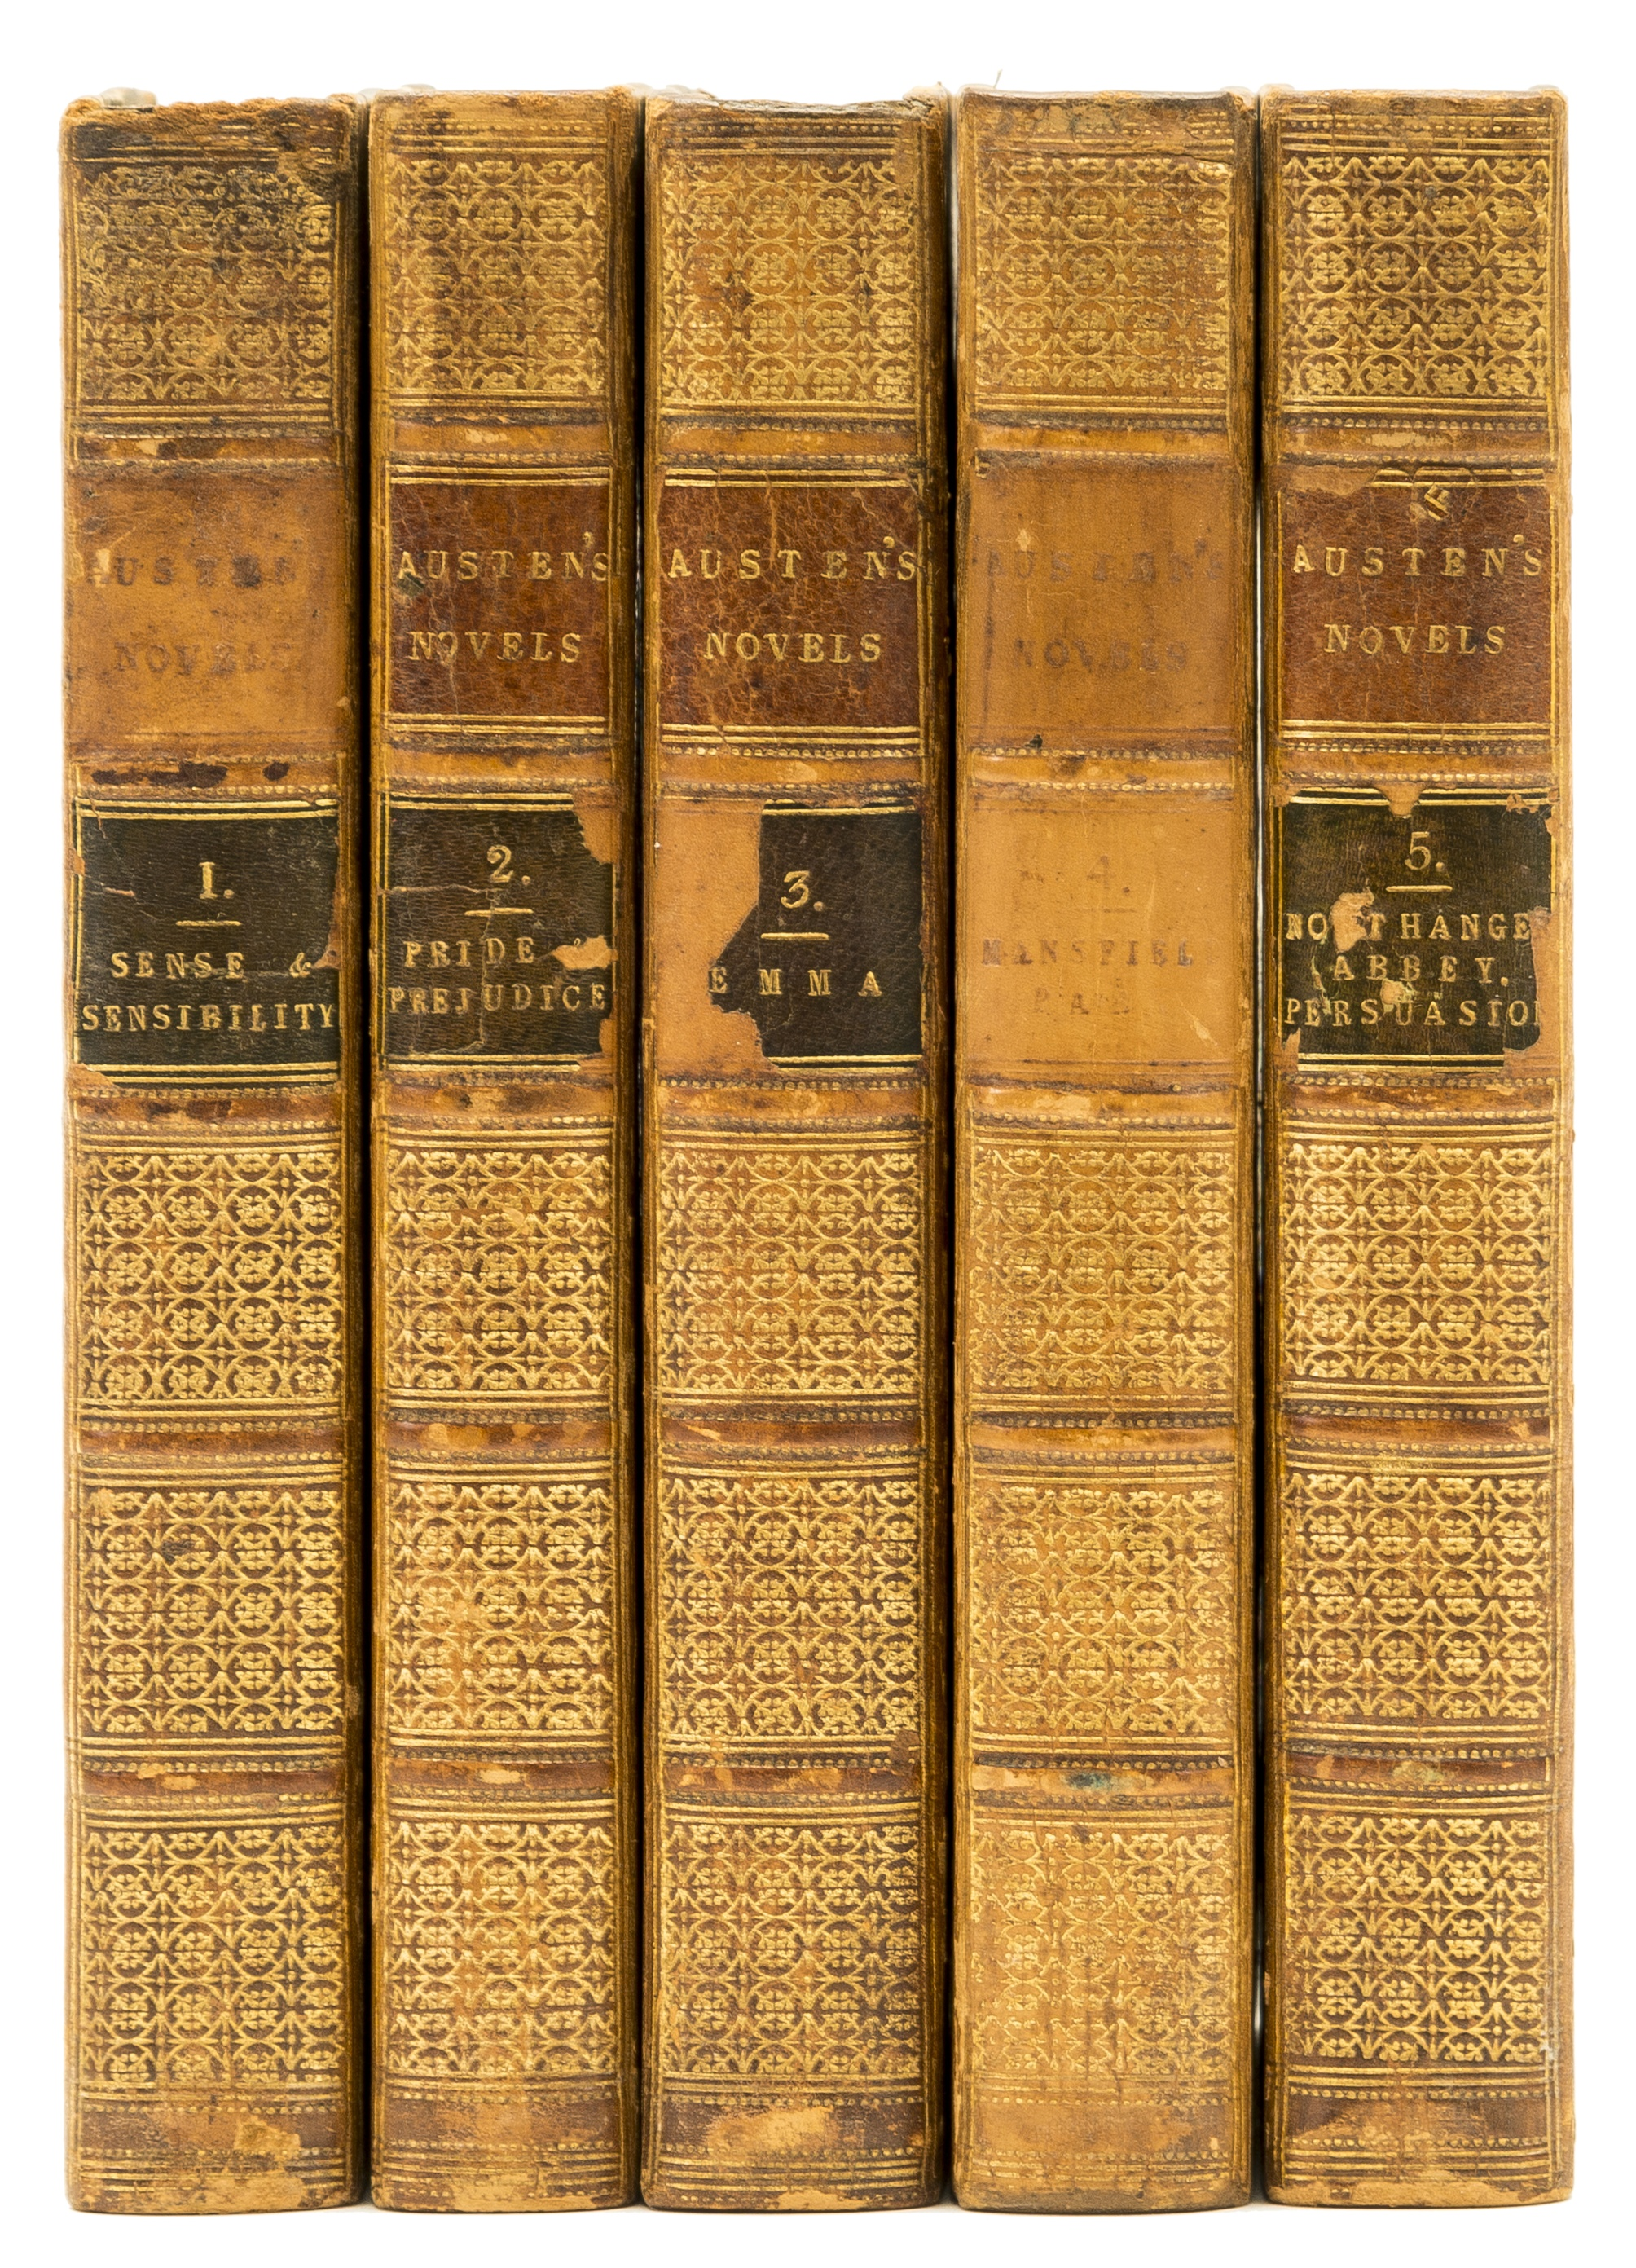 Lot 225 - Austen (Jane) Novels, 6 vol. in 5, reprint of first collected edition, once owned by Jane Austen's …